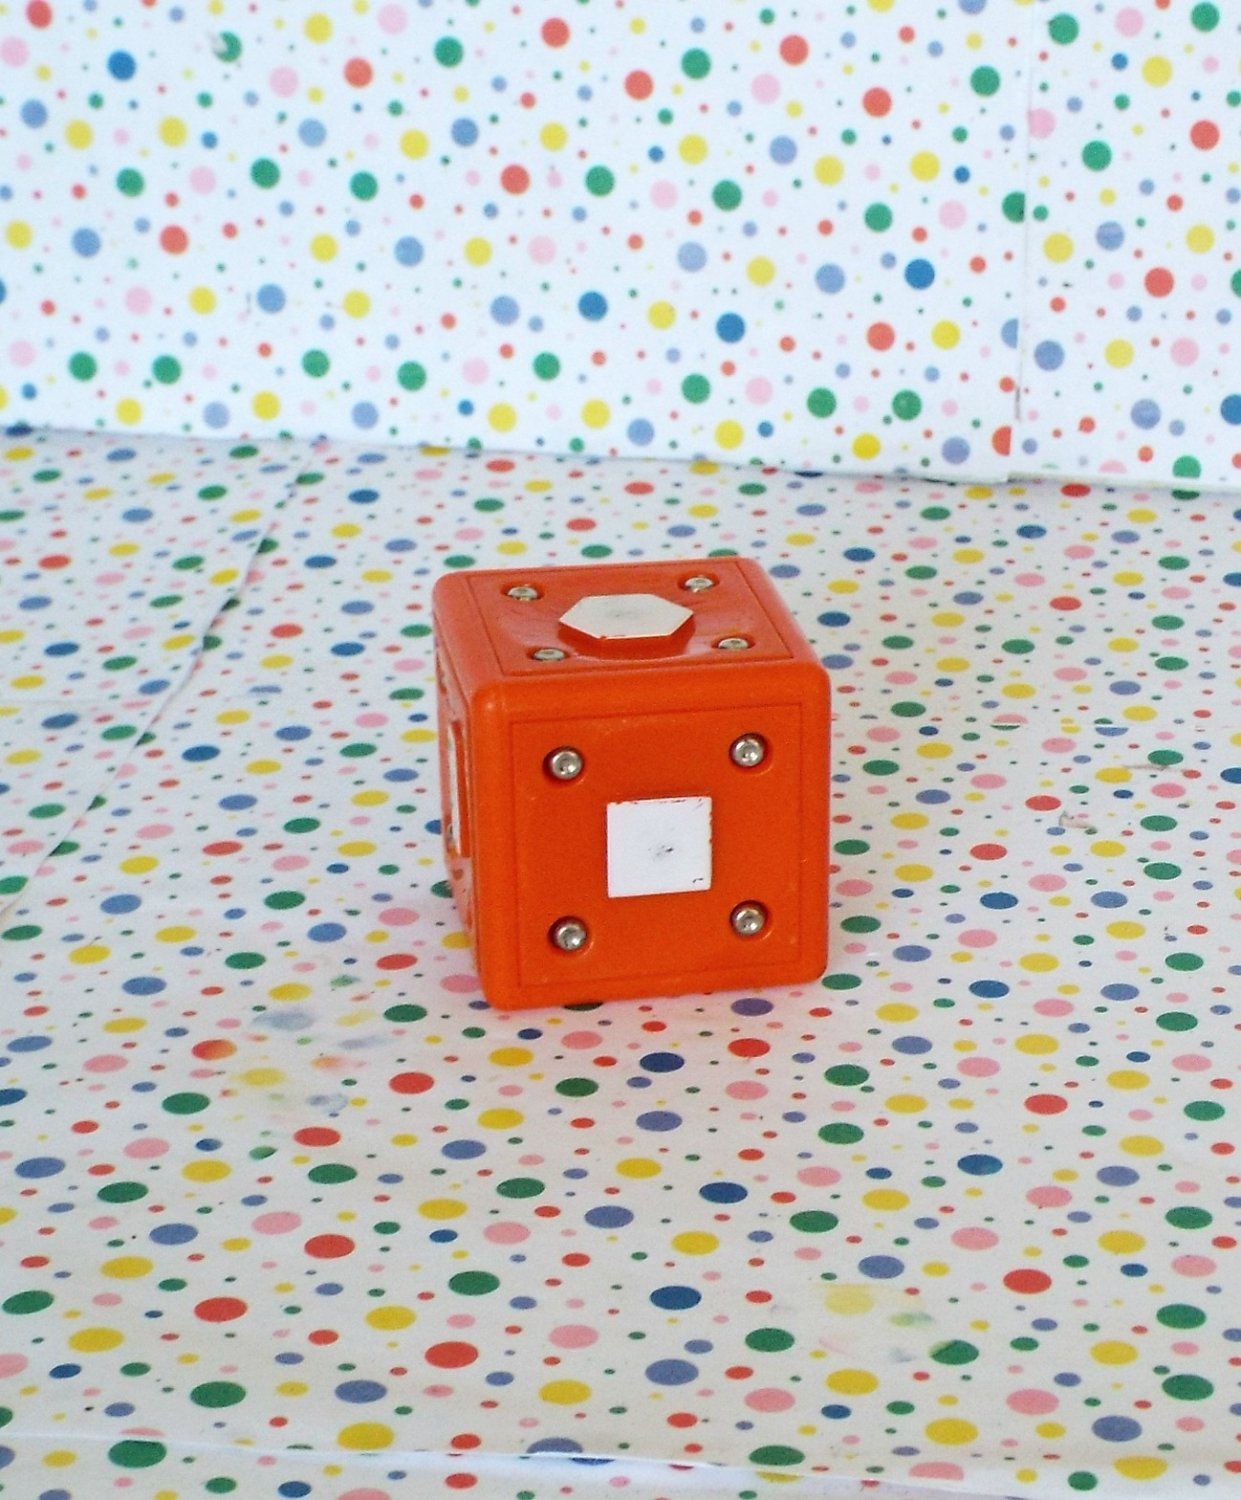 Neurosmith Music System Learning Toy Replacement Orange Block Part